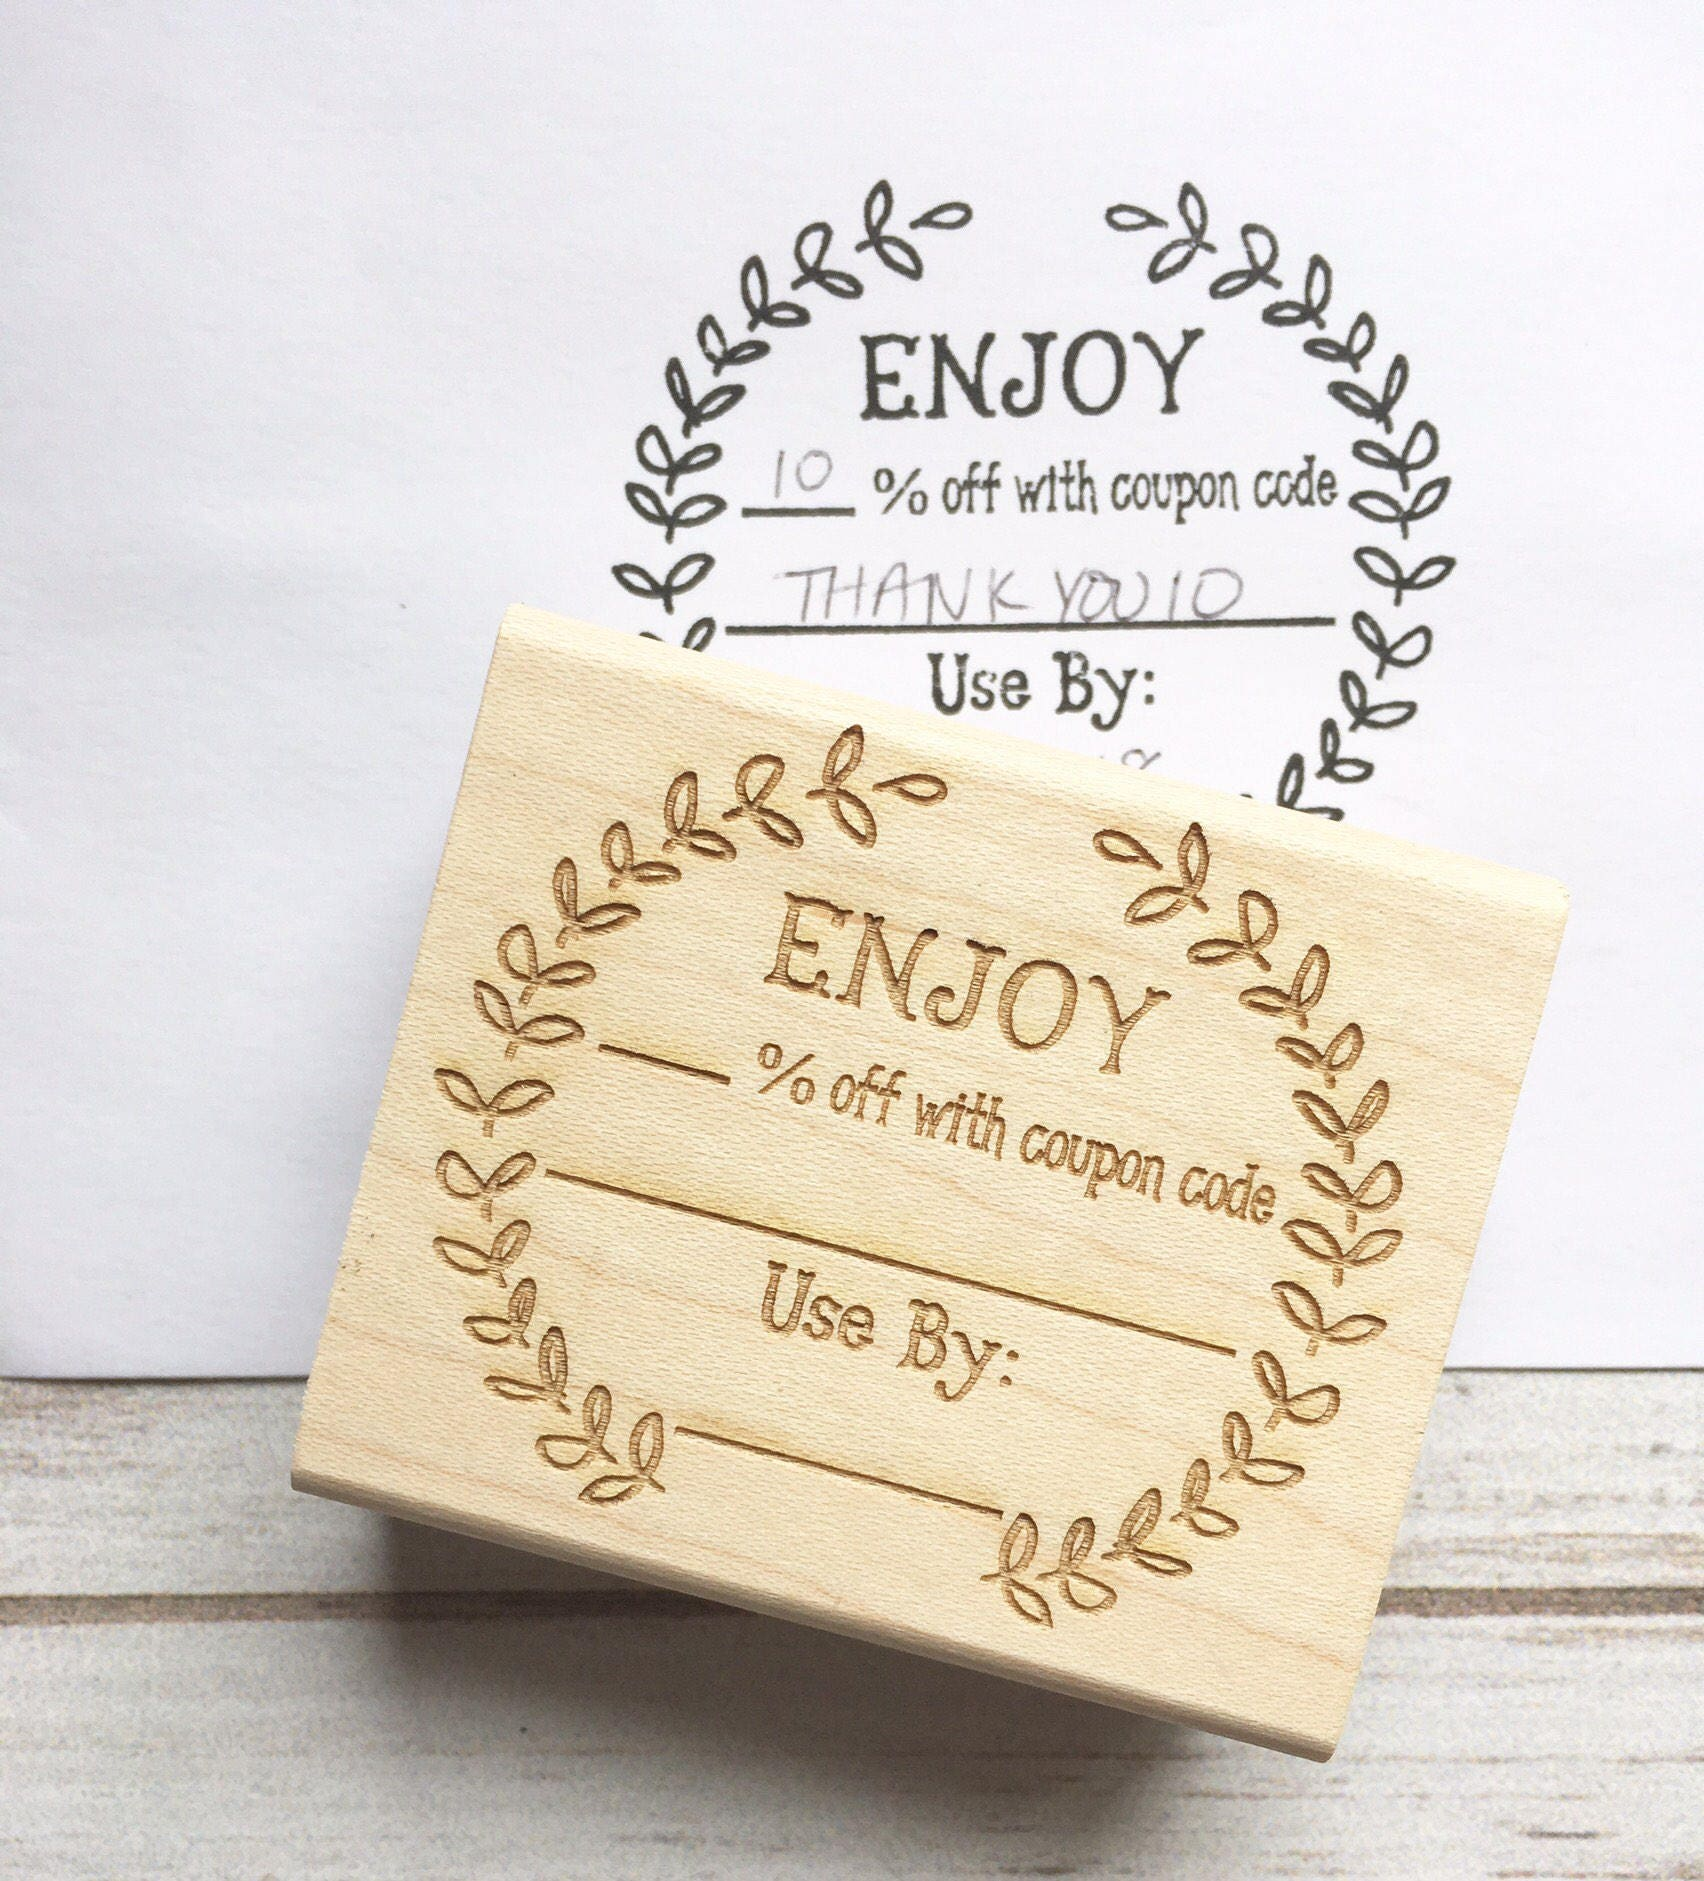 Coupon Code Stamp Enjoy Discount Promo Sale Custom Rubber Stamp